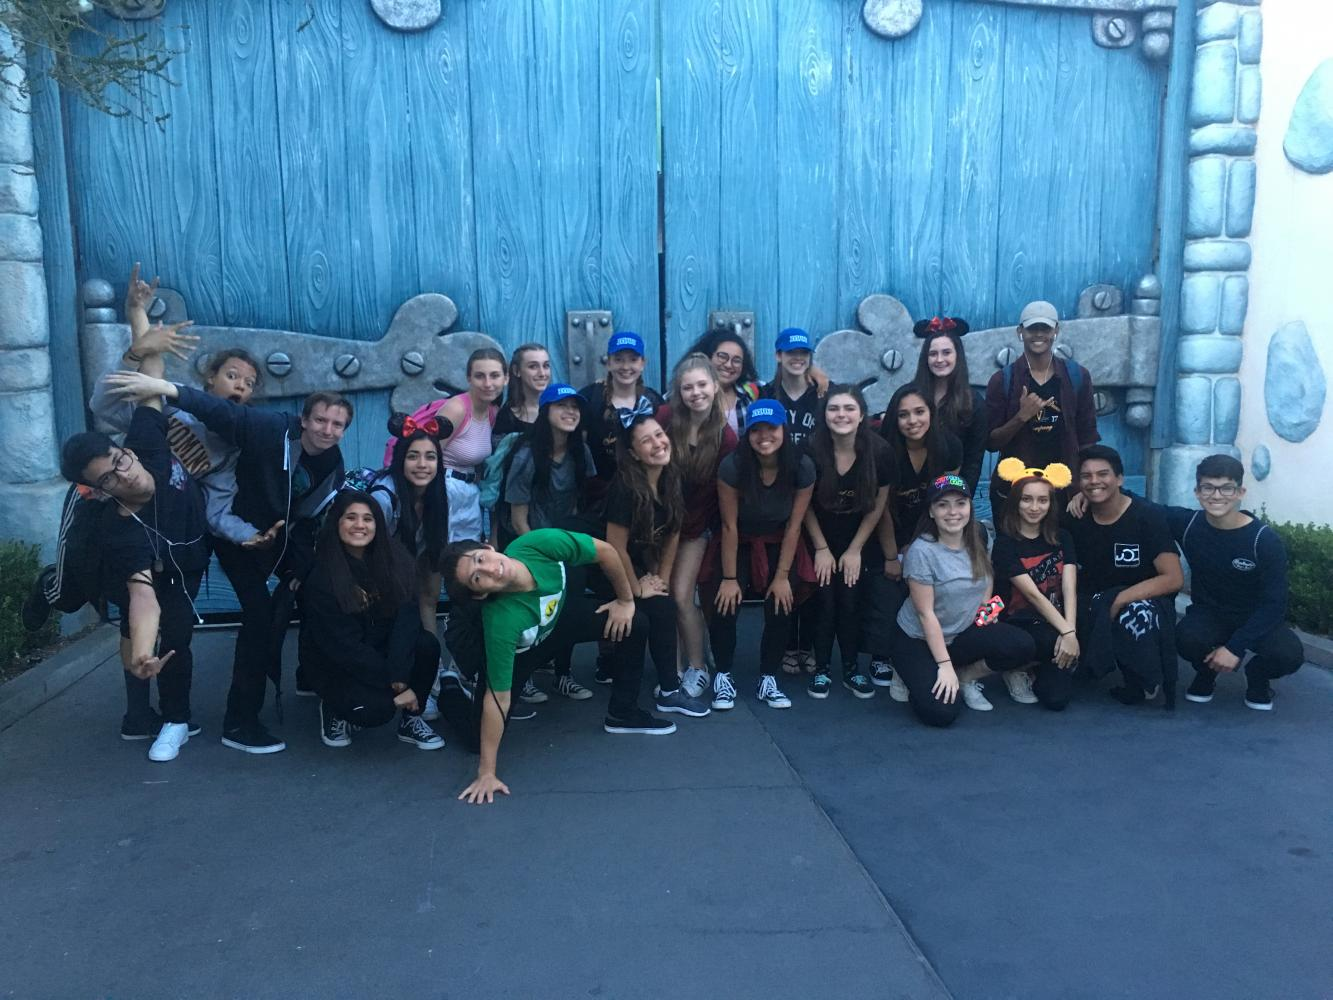 VDC and VC at Disneyland: (left to right) Kyle P., Justis Pearce, Dorian McHenry, Kayle Solis, Donna Gaytan, Francisco Flores, Julia Atkinson, Sophia Pracillio, Hayley Hoey, Mia Vasquez, Megan Formancowiz, Avery Miles, Kaylee Nguyen, Isabella Perez, Vanessa Carroll, Lilia Bour, Kate Ayala, Alyssa Farnsworth, Ashley Ramynke, Stela Martinez, Christian Bernard, Israel Rios, and Troy Nishimoto.